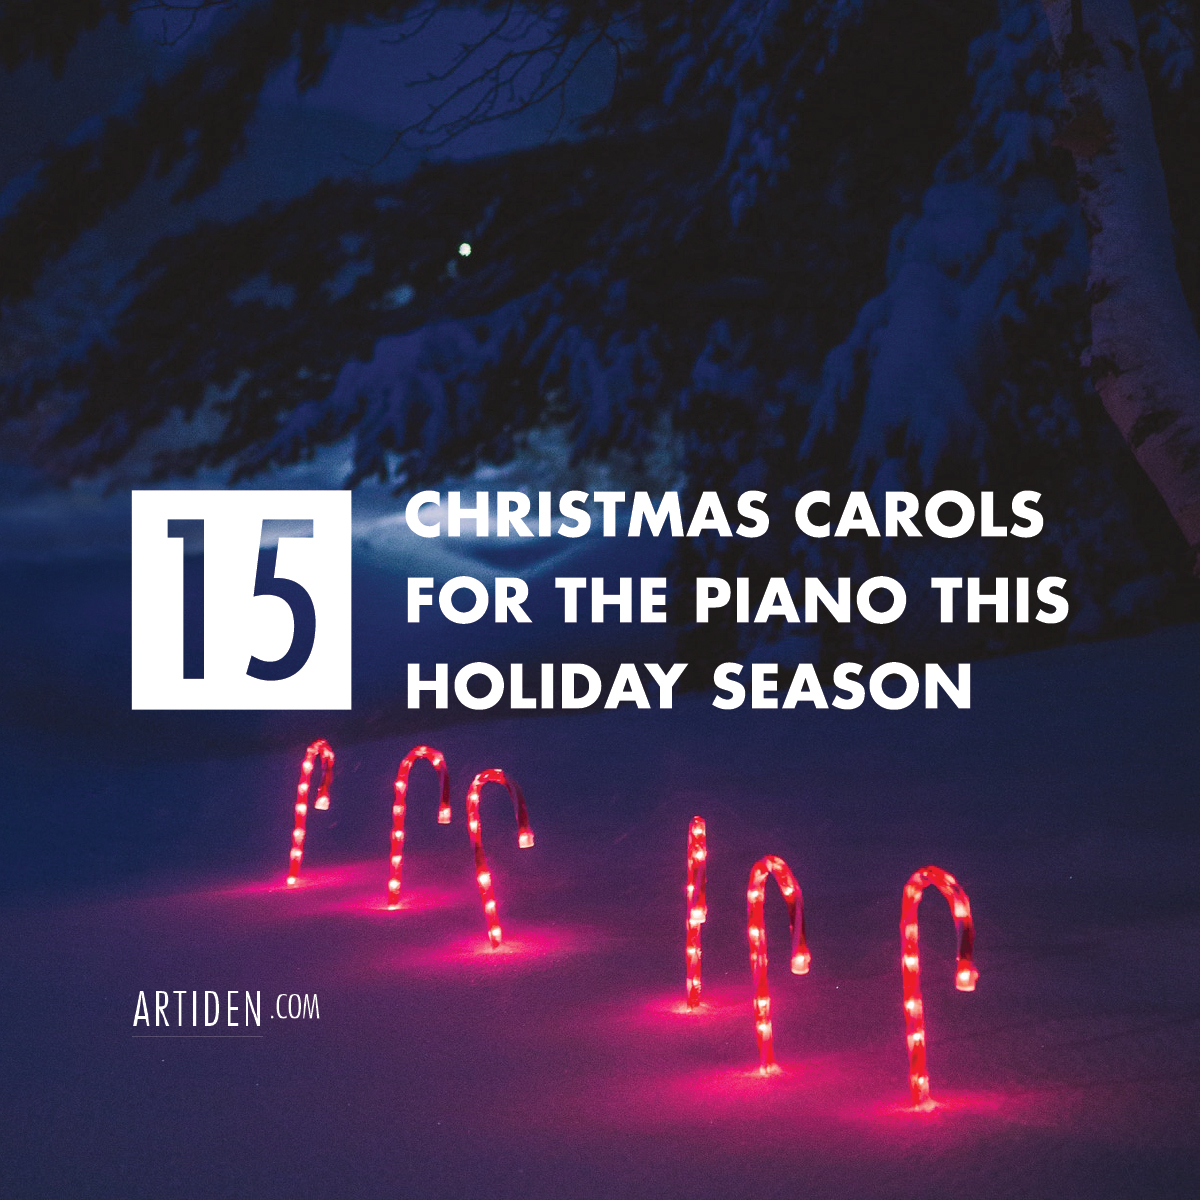 15 Christmas Carols for the Piano This Holiday Season